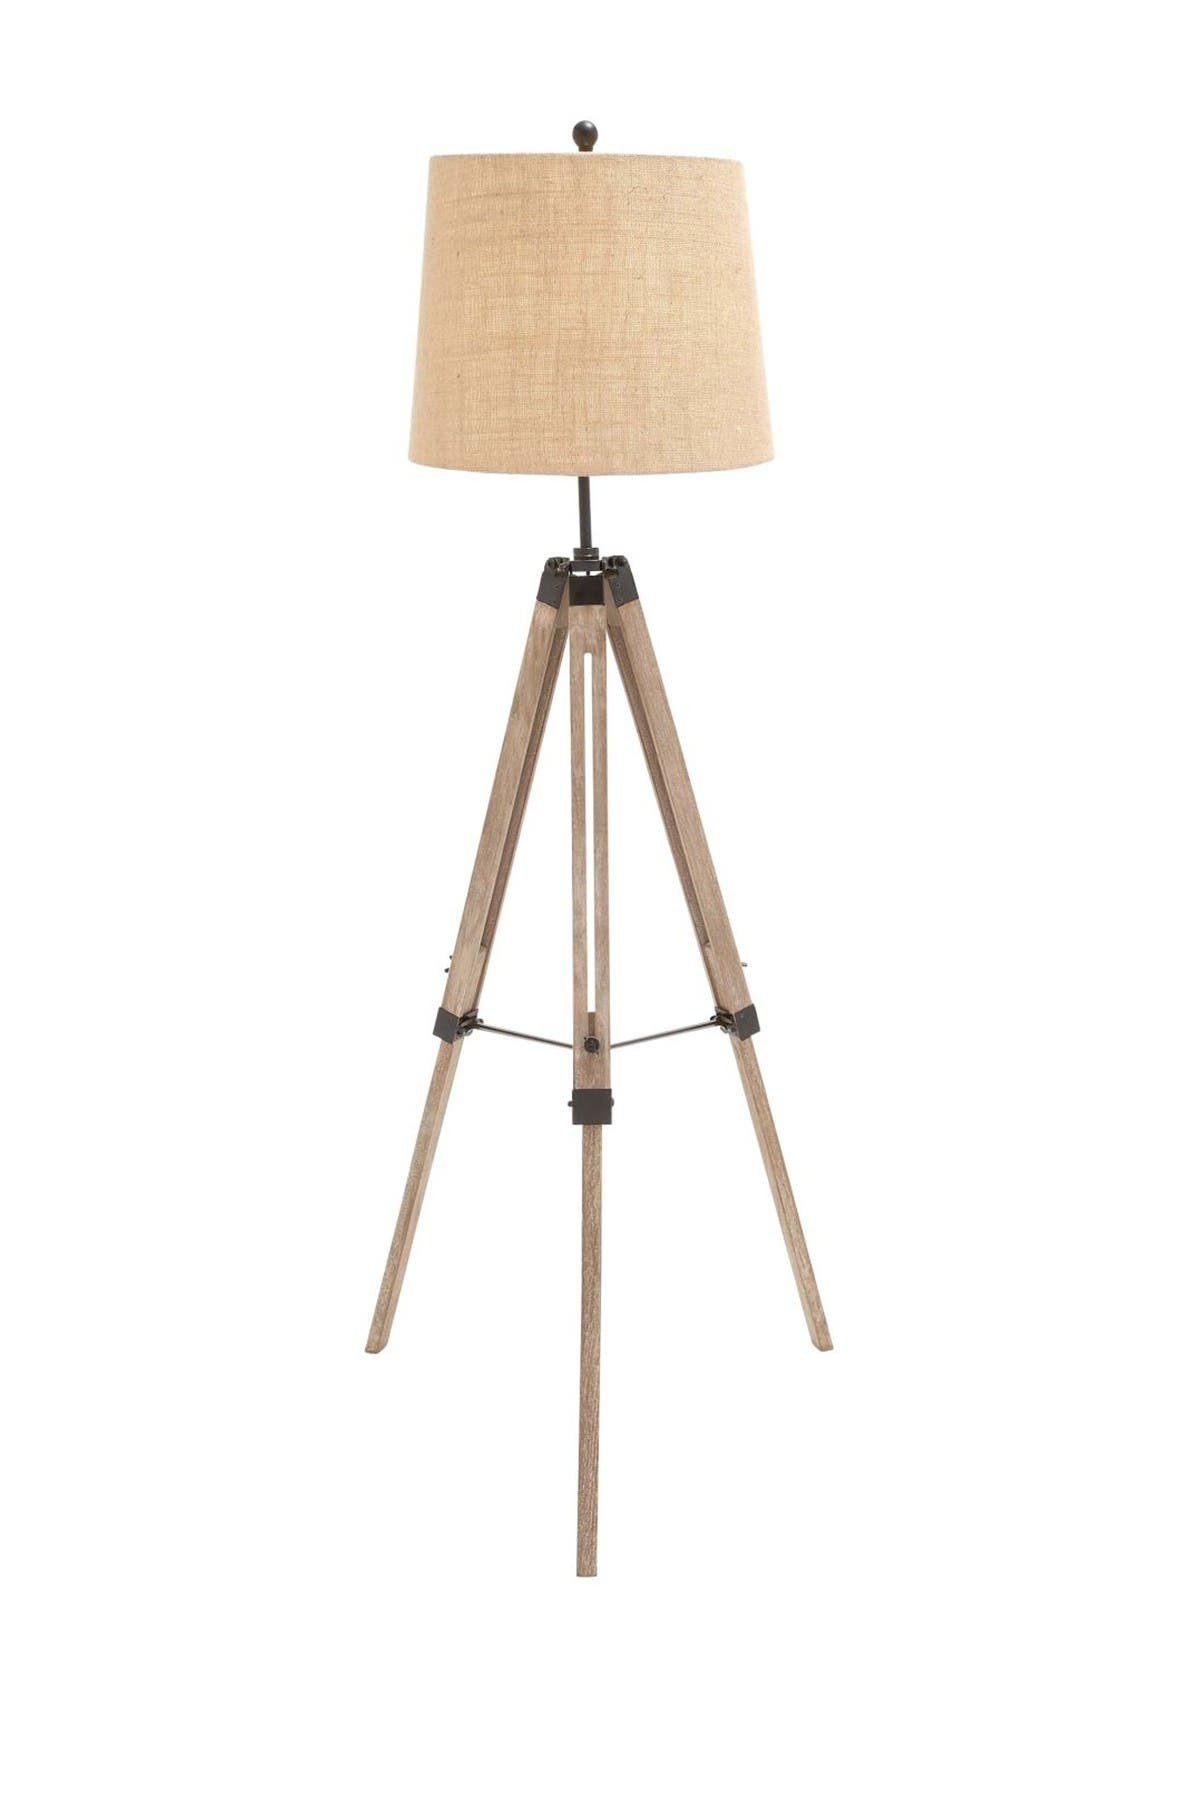 Willow Row Wood Metal Tripod Floor Lamp Nordstrom Rack